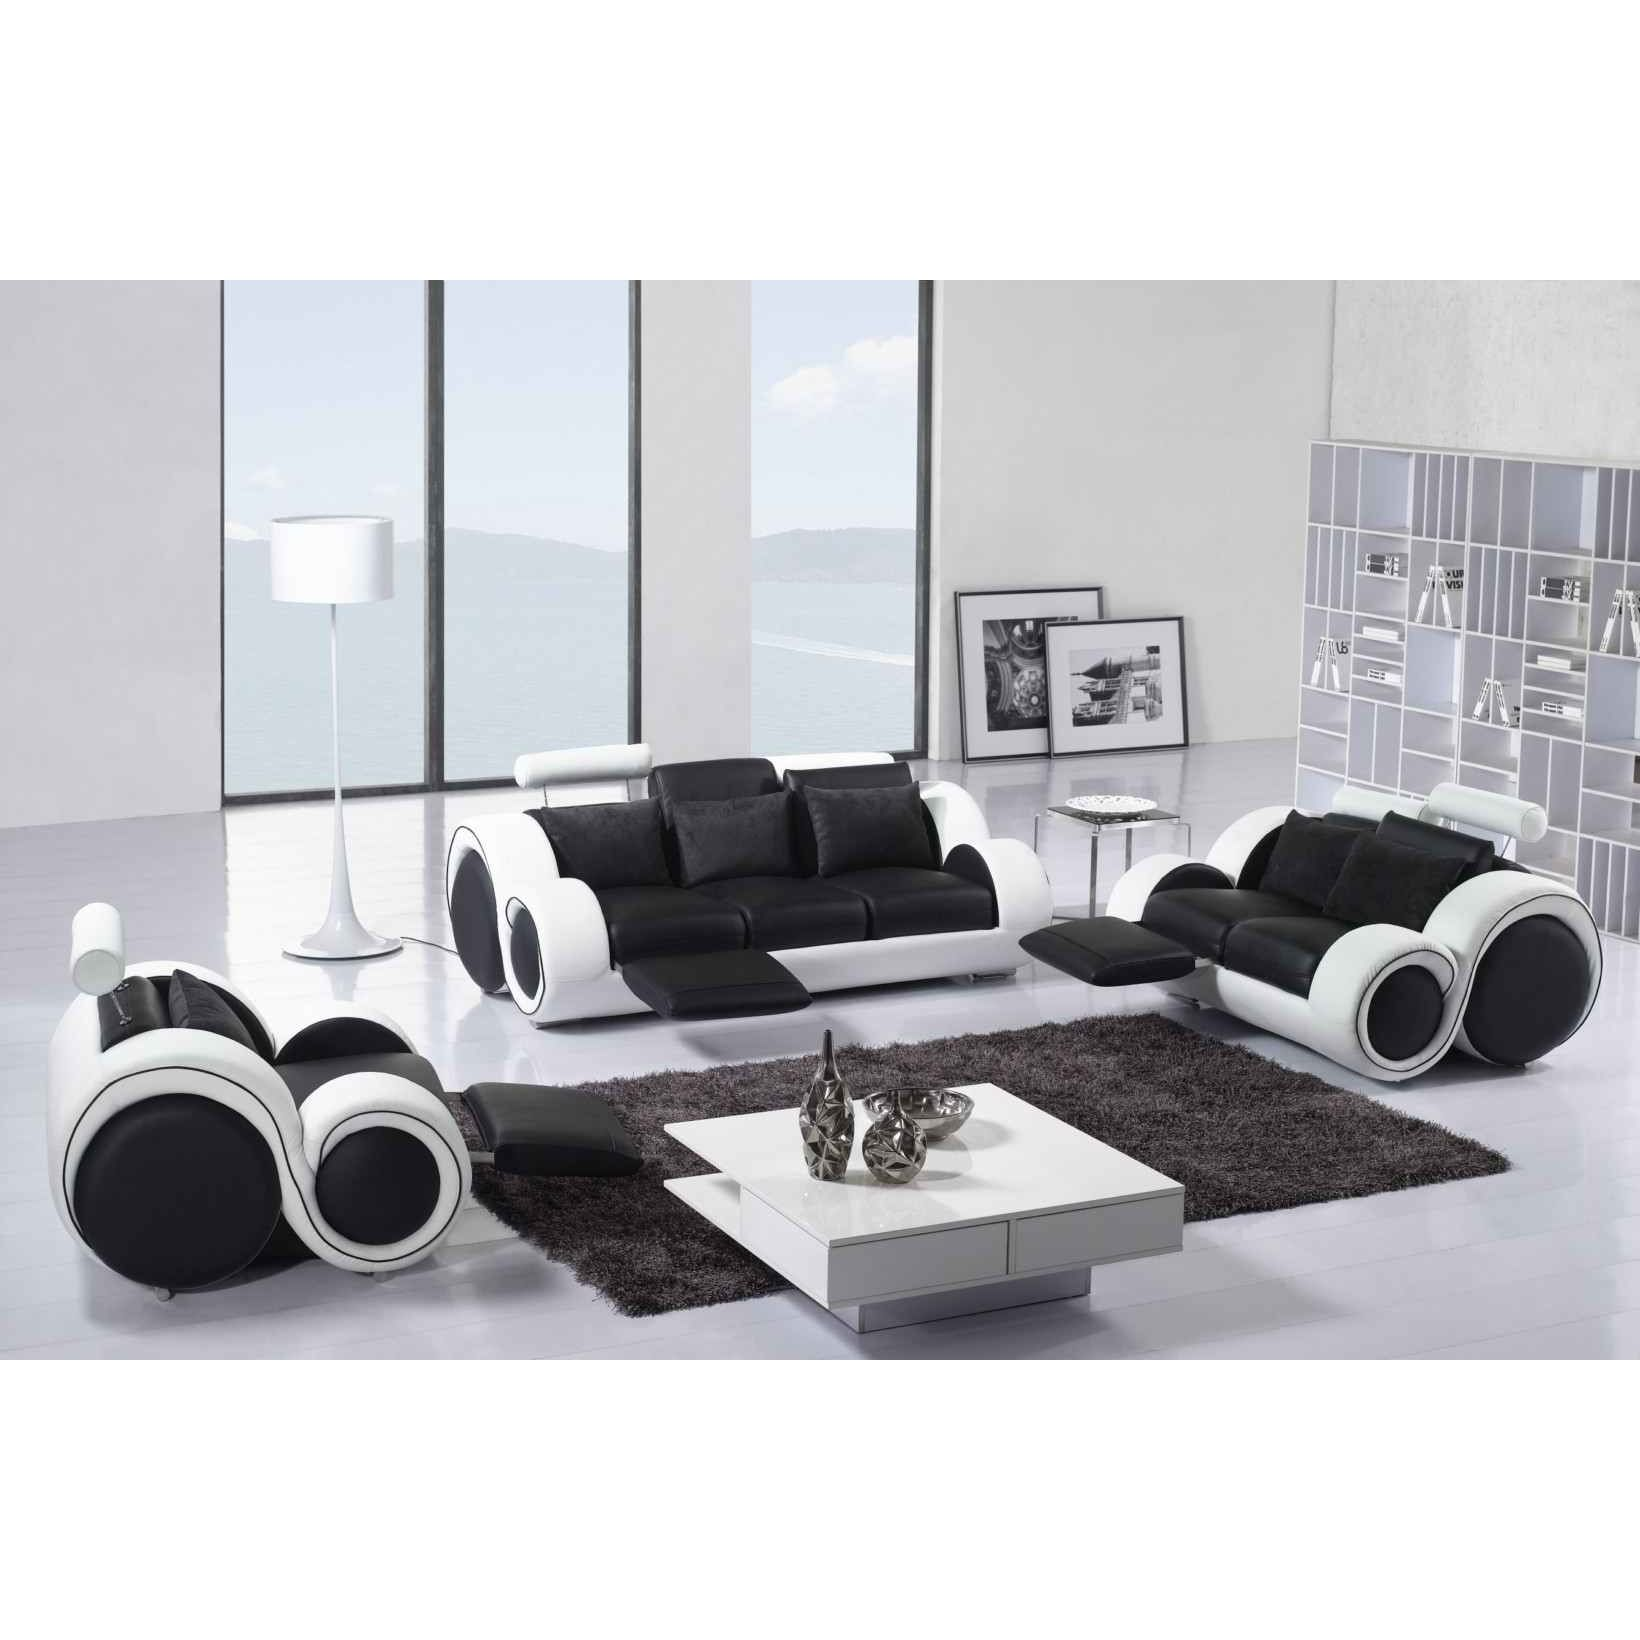 deco in paris ensemble cuir relax oslo 3 1 1 places noir. Black Bedroom Furniture Sets. Home Design Ideas